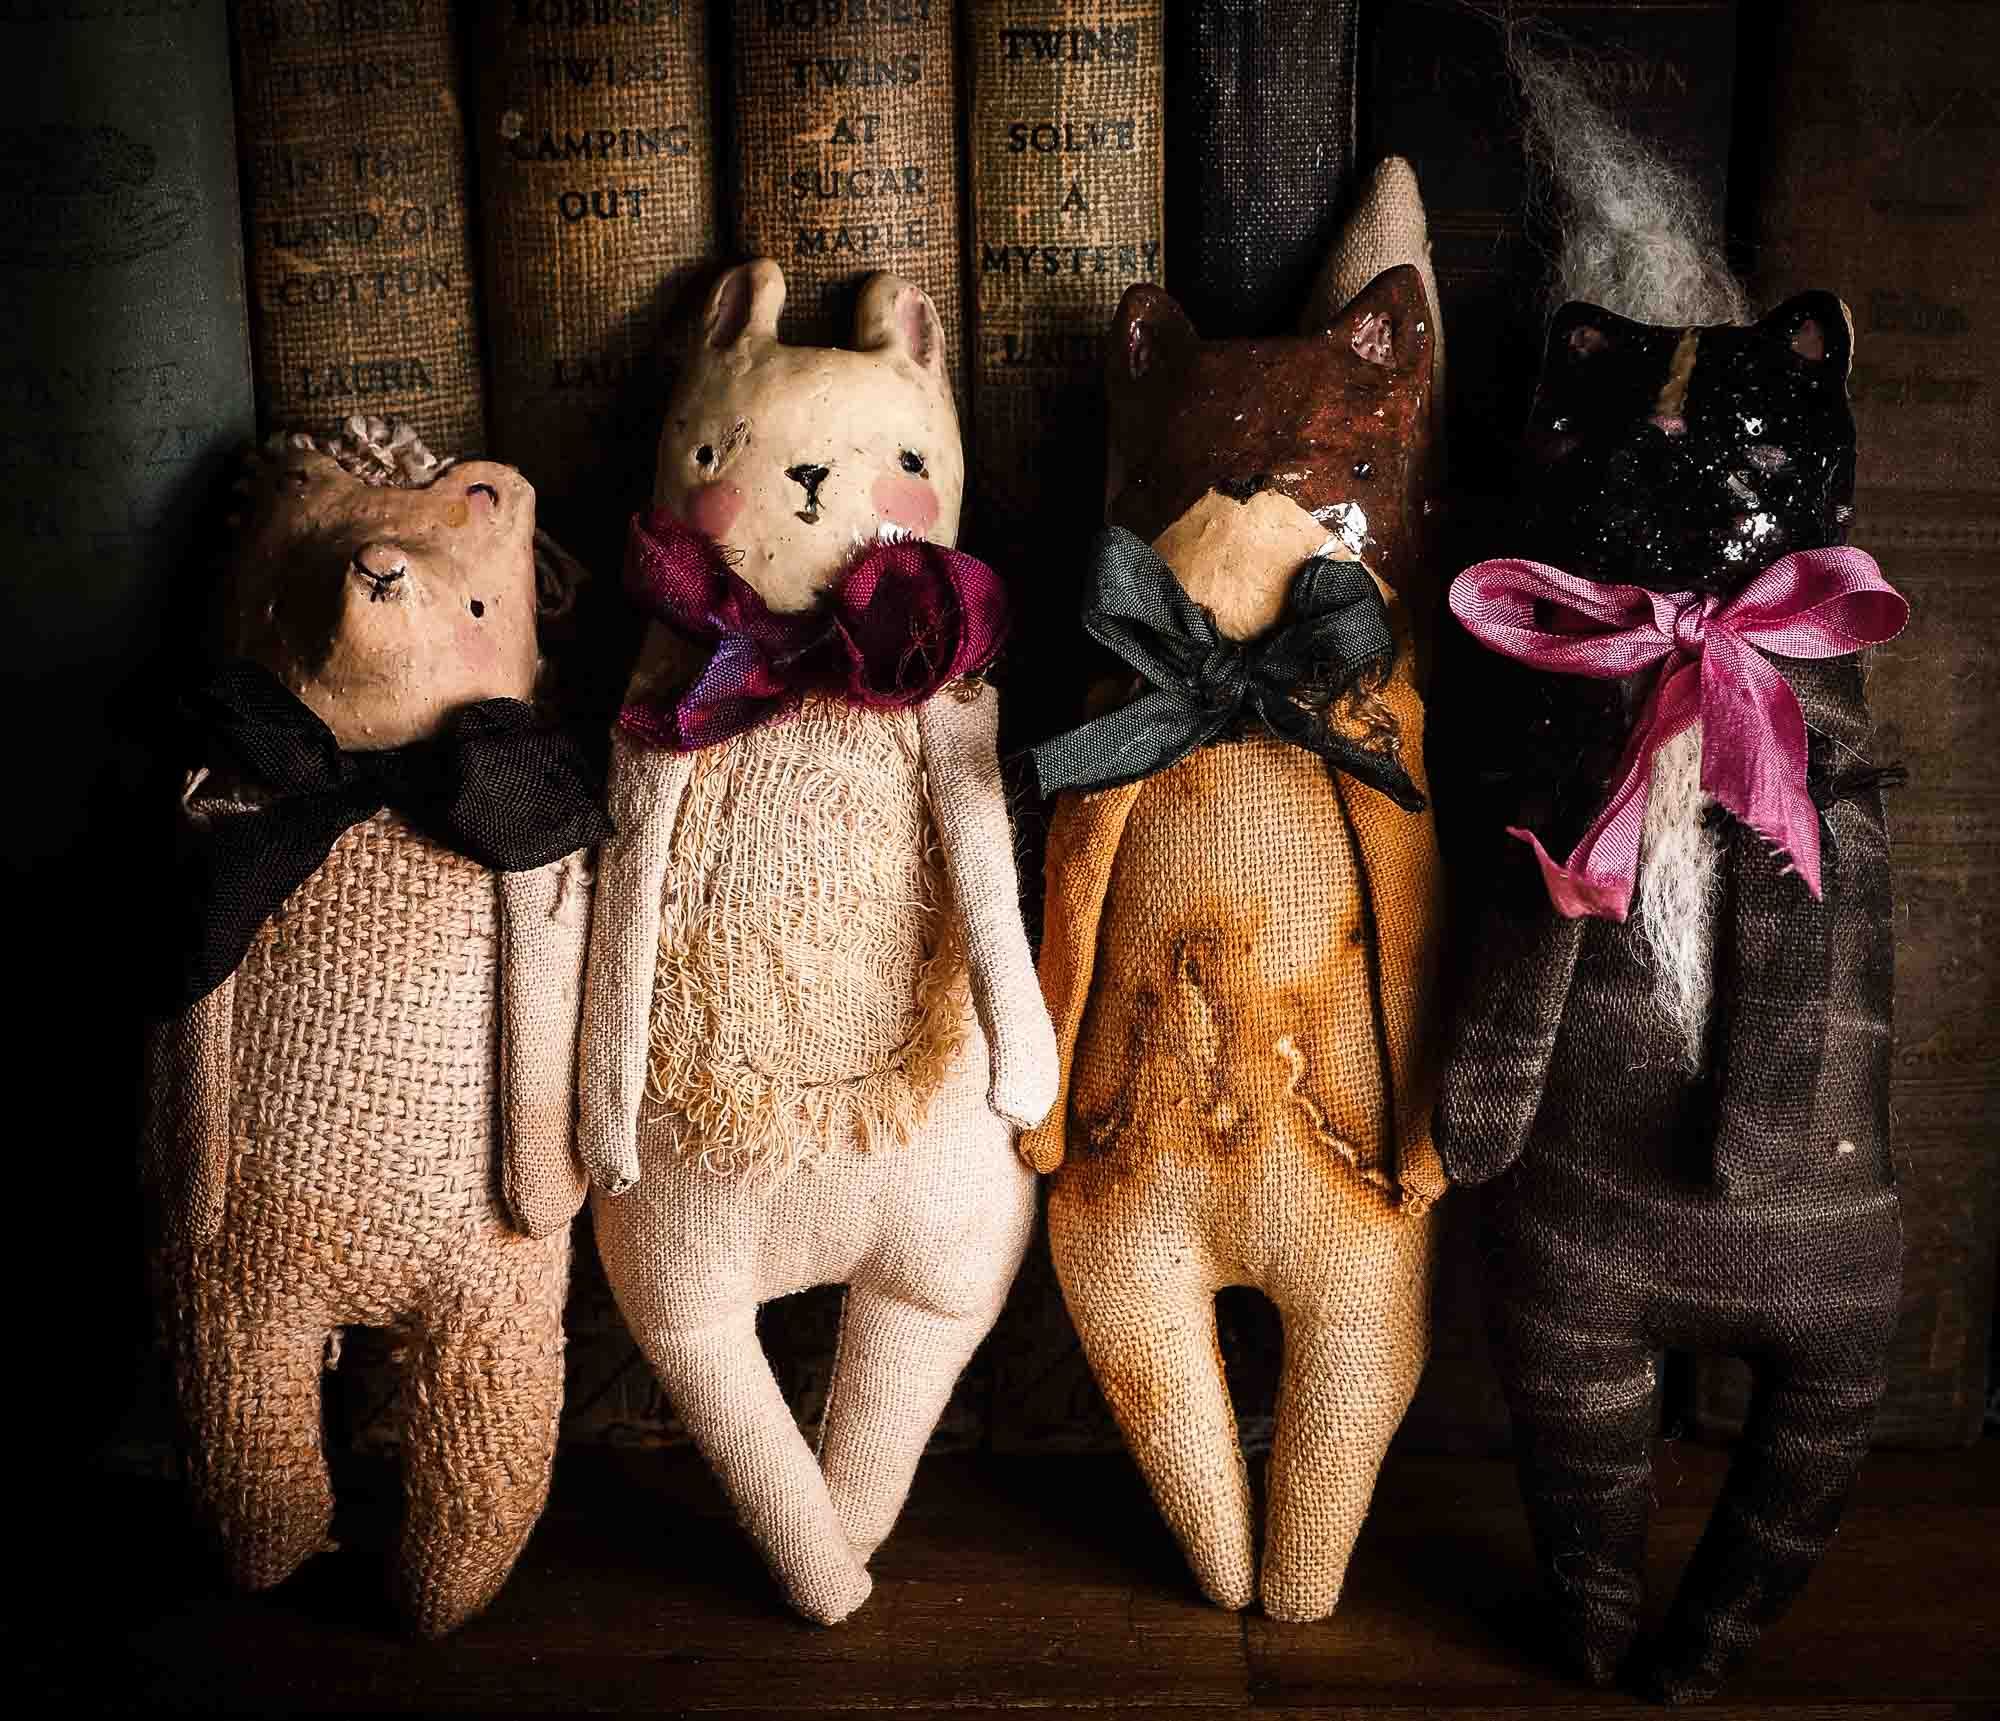 Woodlands Collection Of Unique Soft sculpture art doll by Idania Salcido Danita Art with a Handmade ceramics face, organic dyed fabric and silk bows